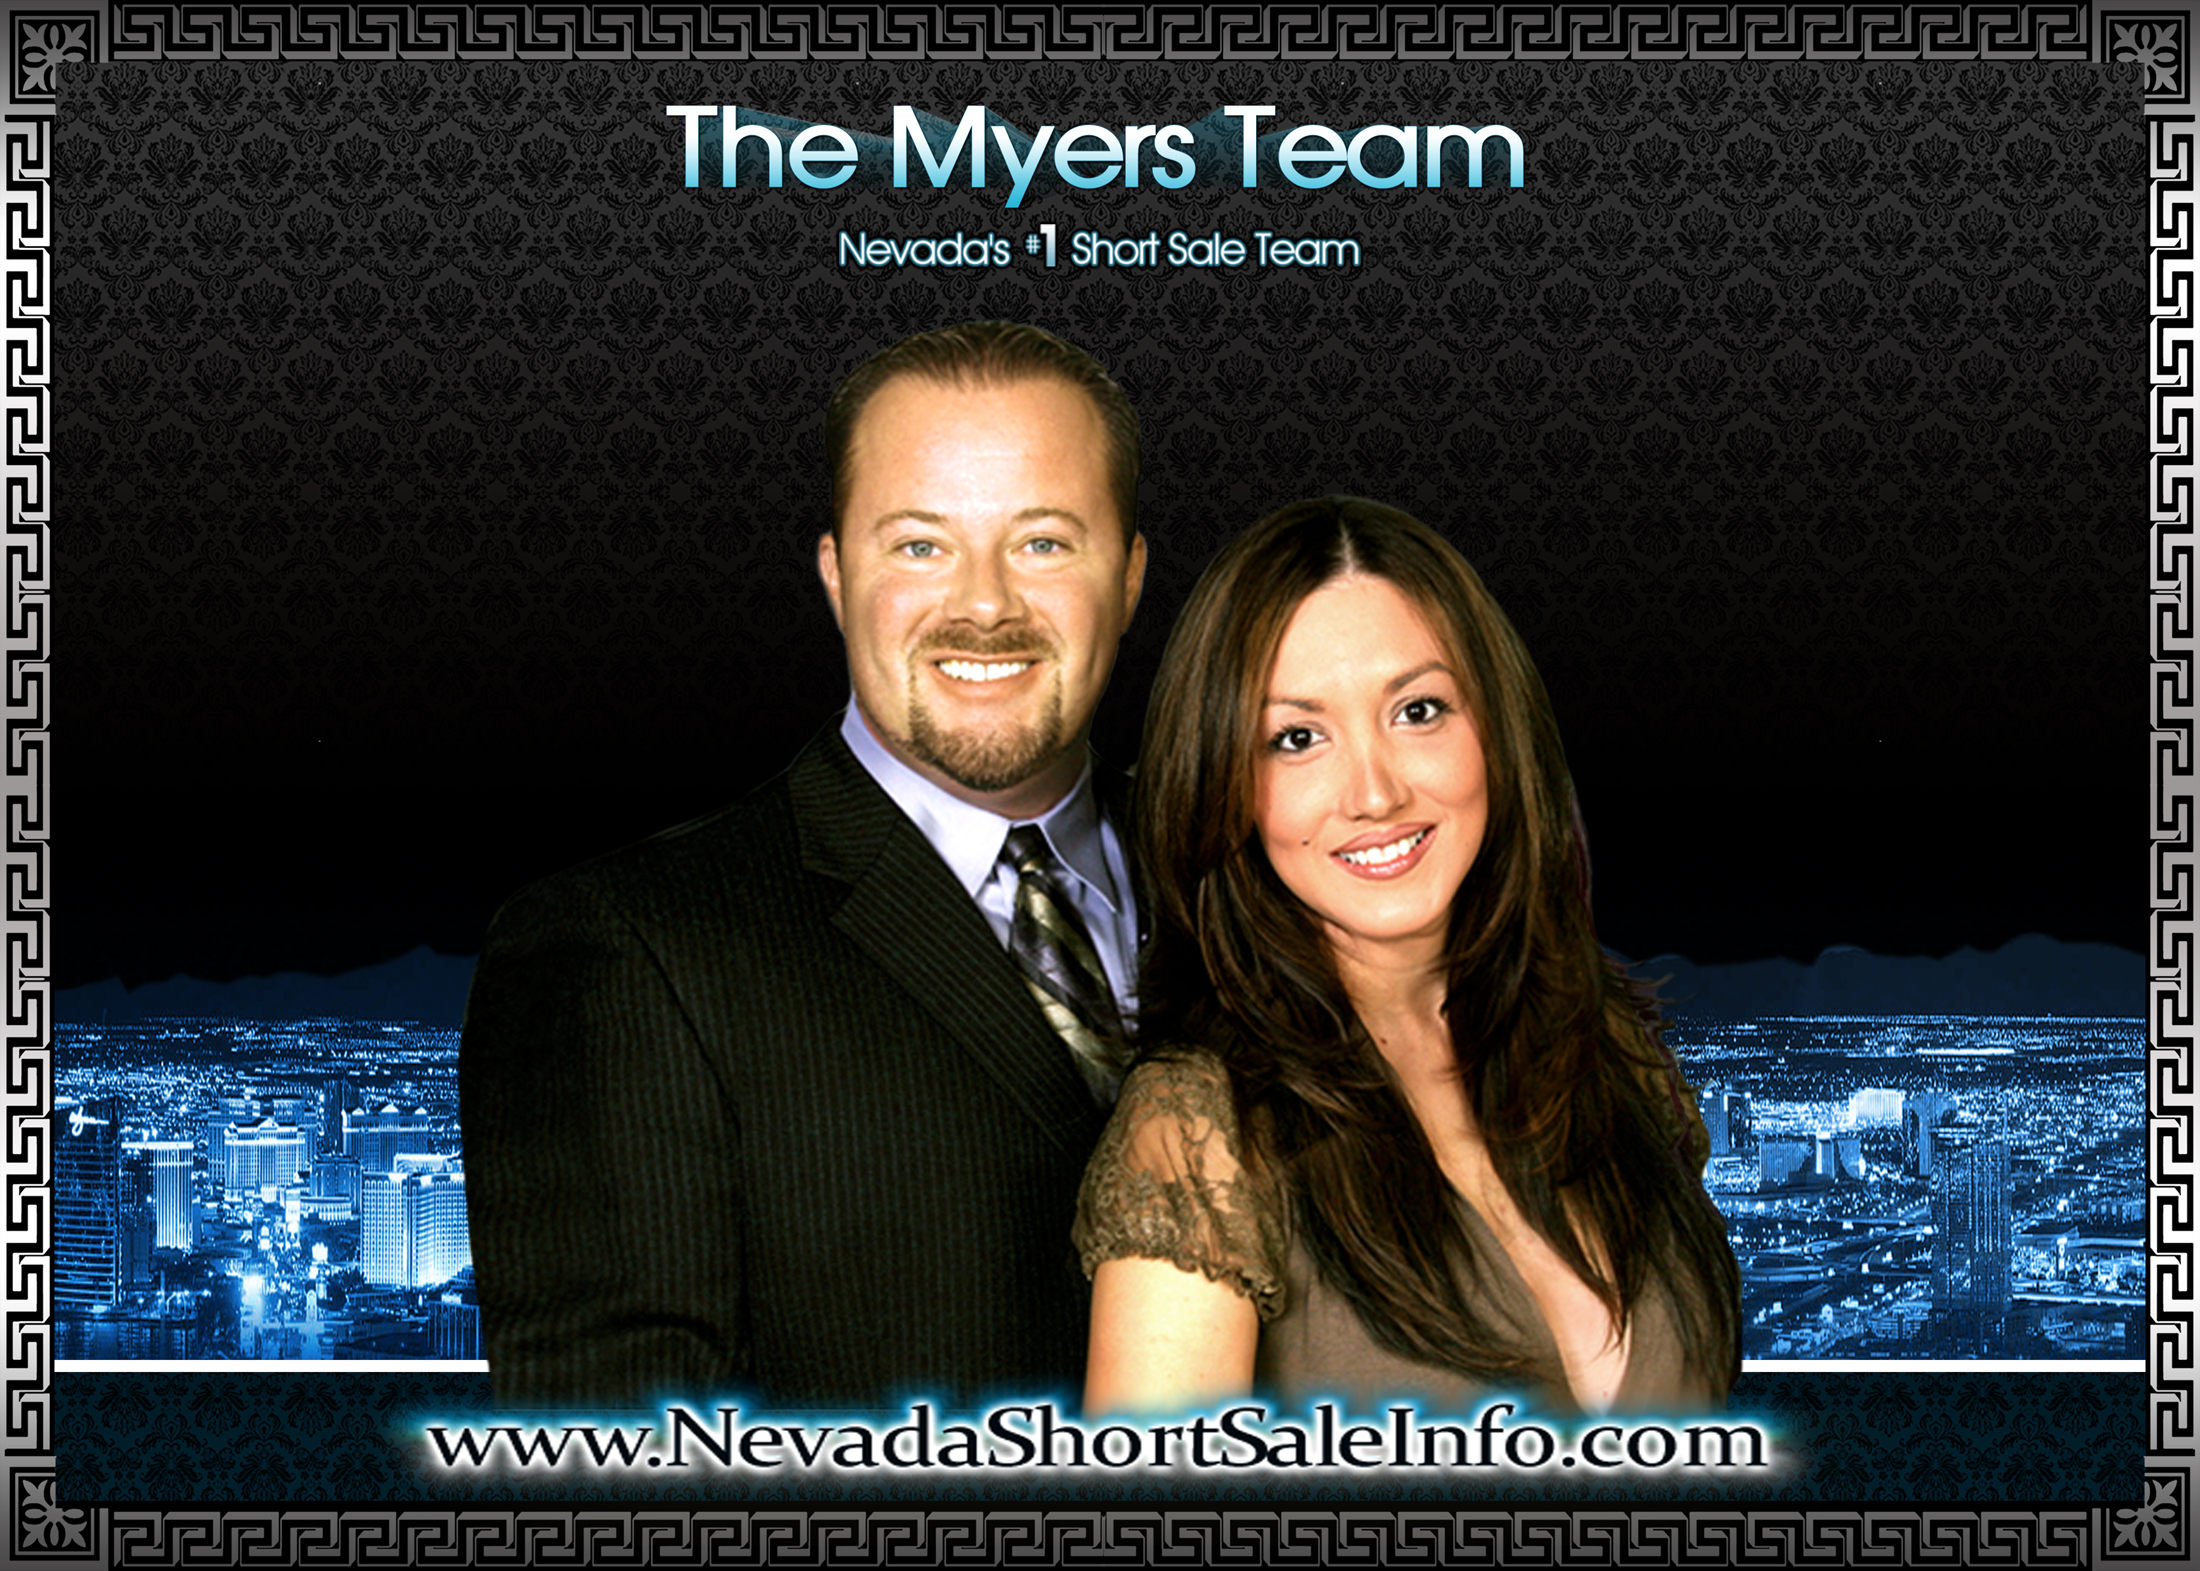 The Myers Team - Las Vegas Nevada Short Sale Experts